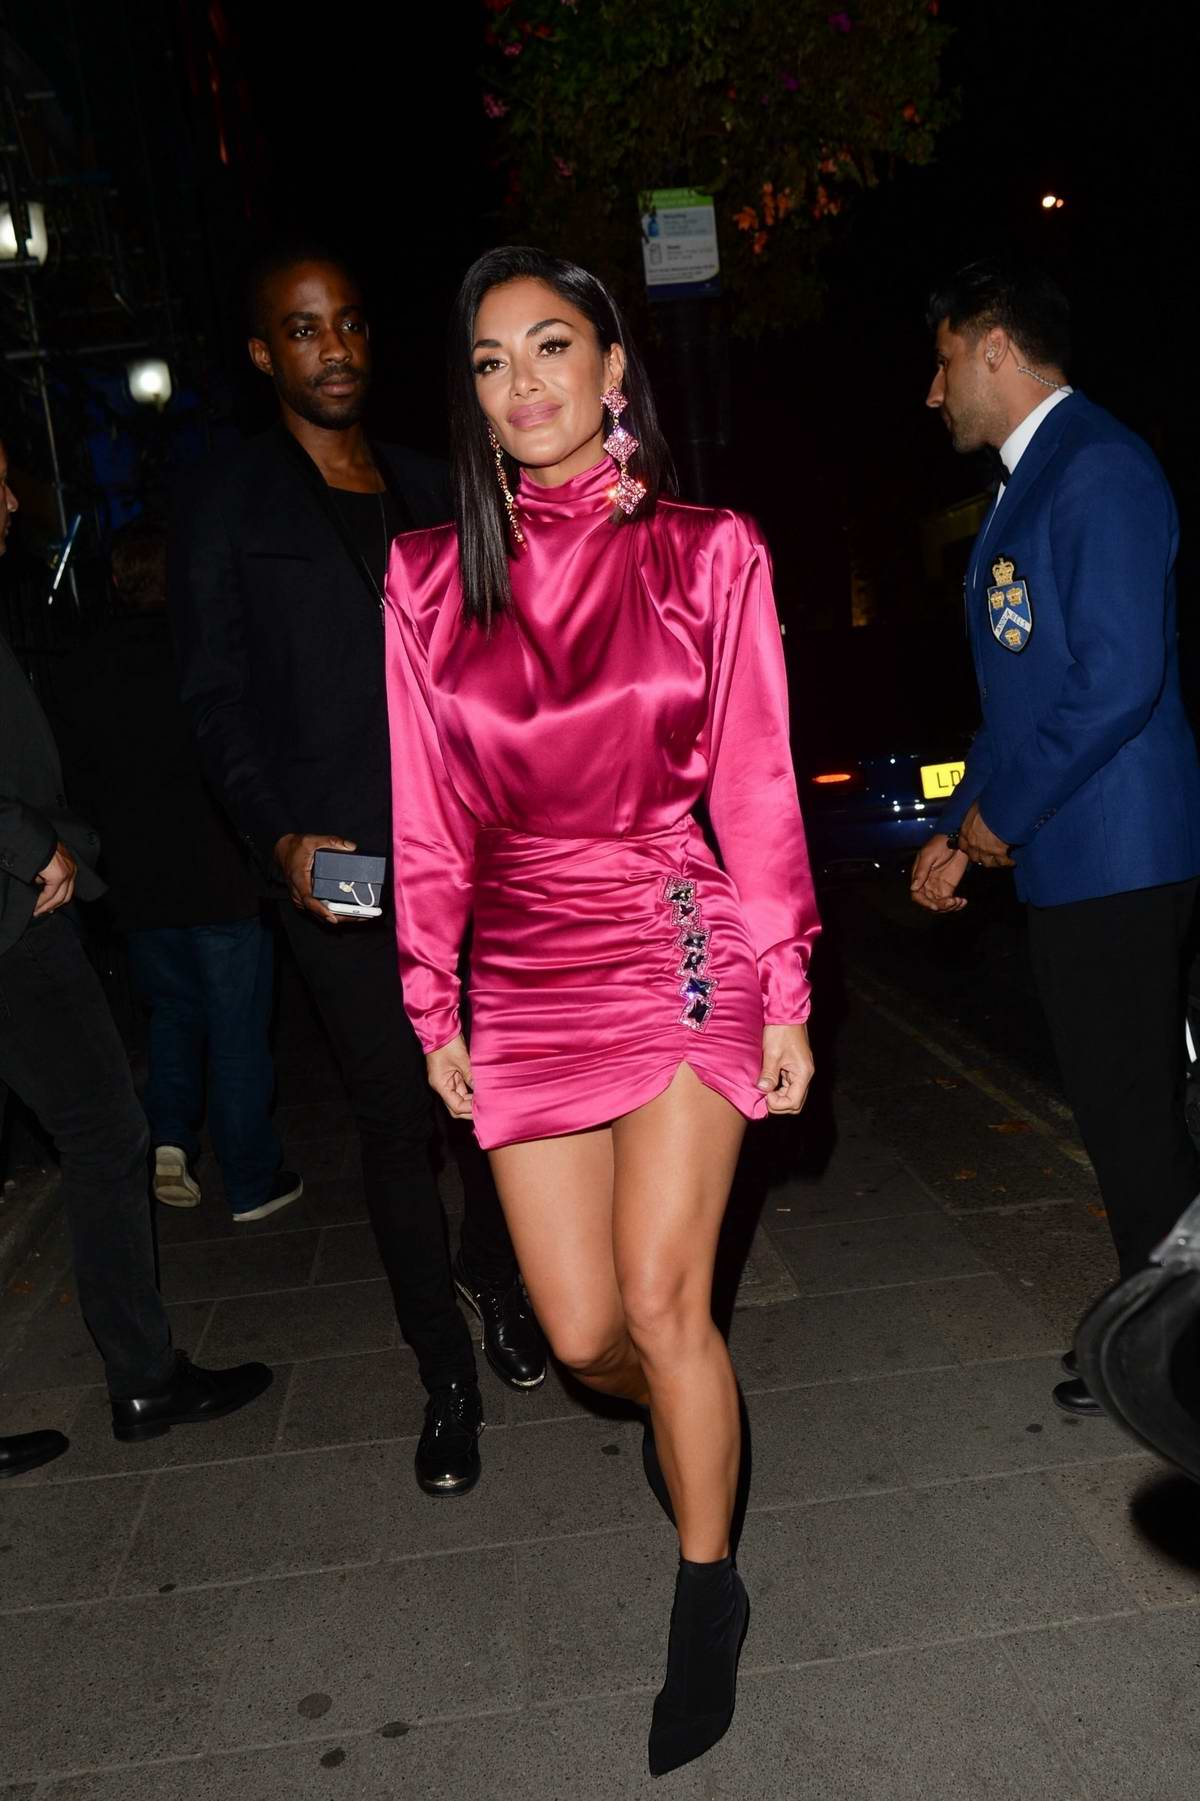 Nicole Scherzinger spotted in a pink outfit as she leaves Annabel's nightclub in London, UK